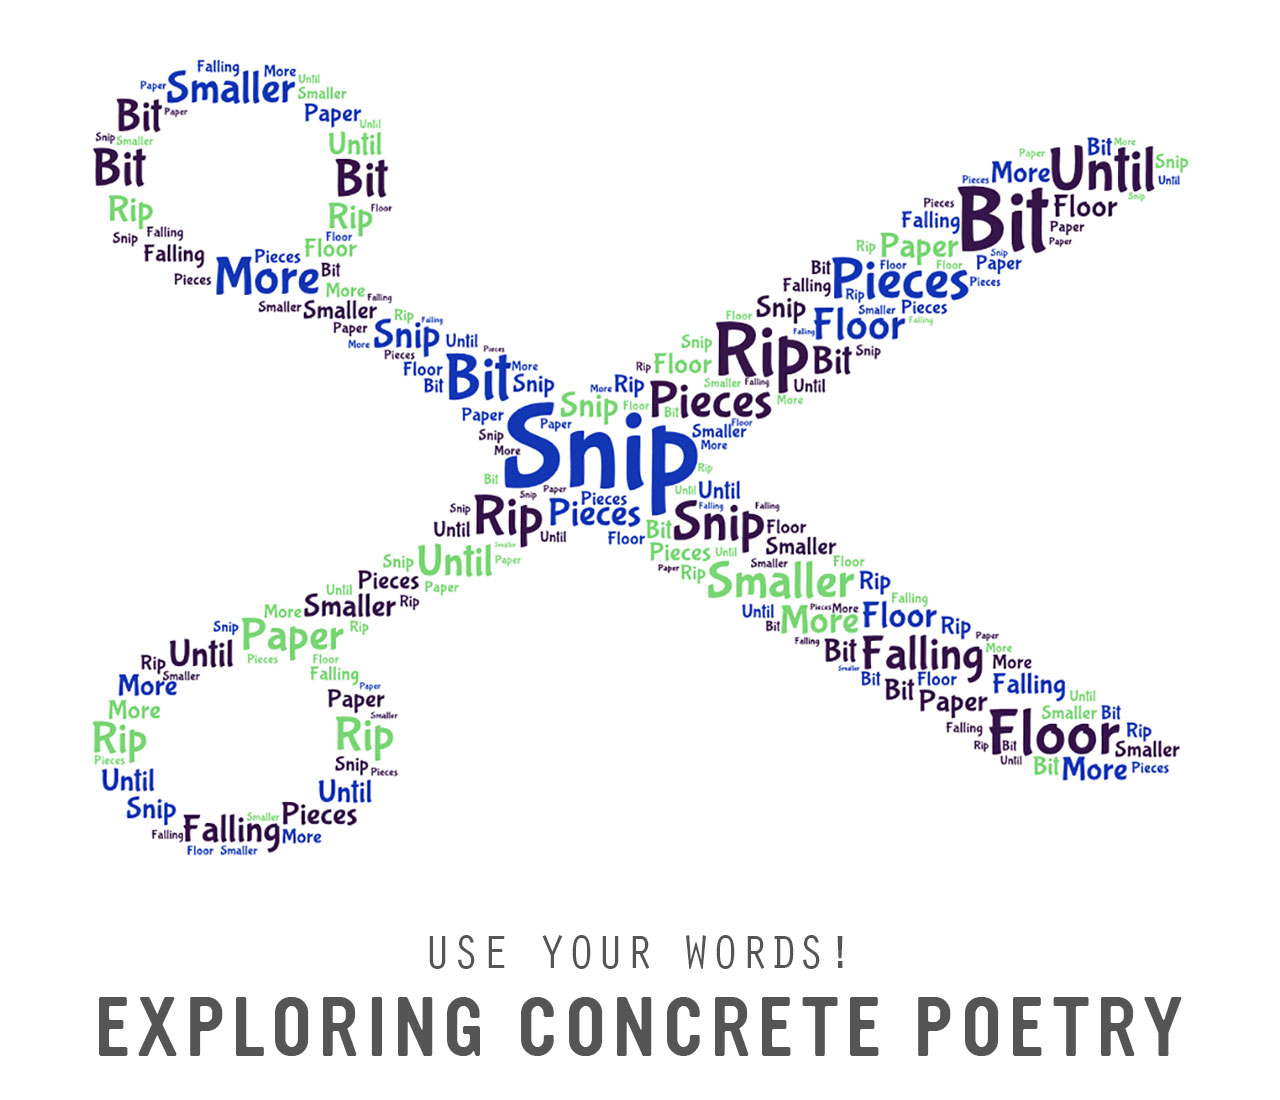 Use Your Words! Exploring Concrete Poetry